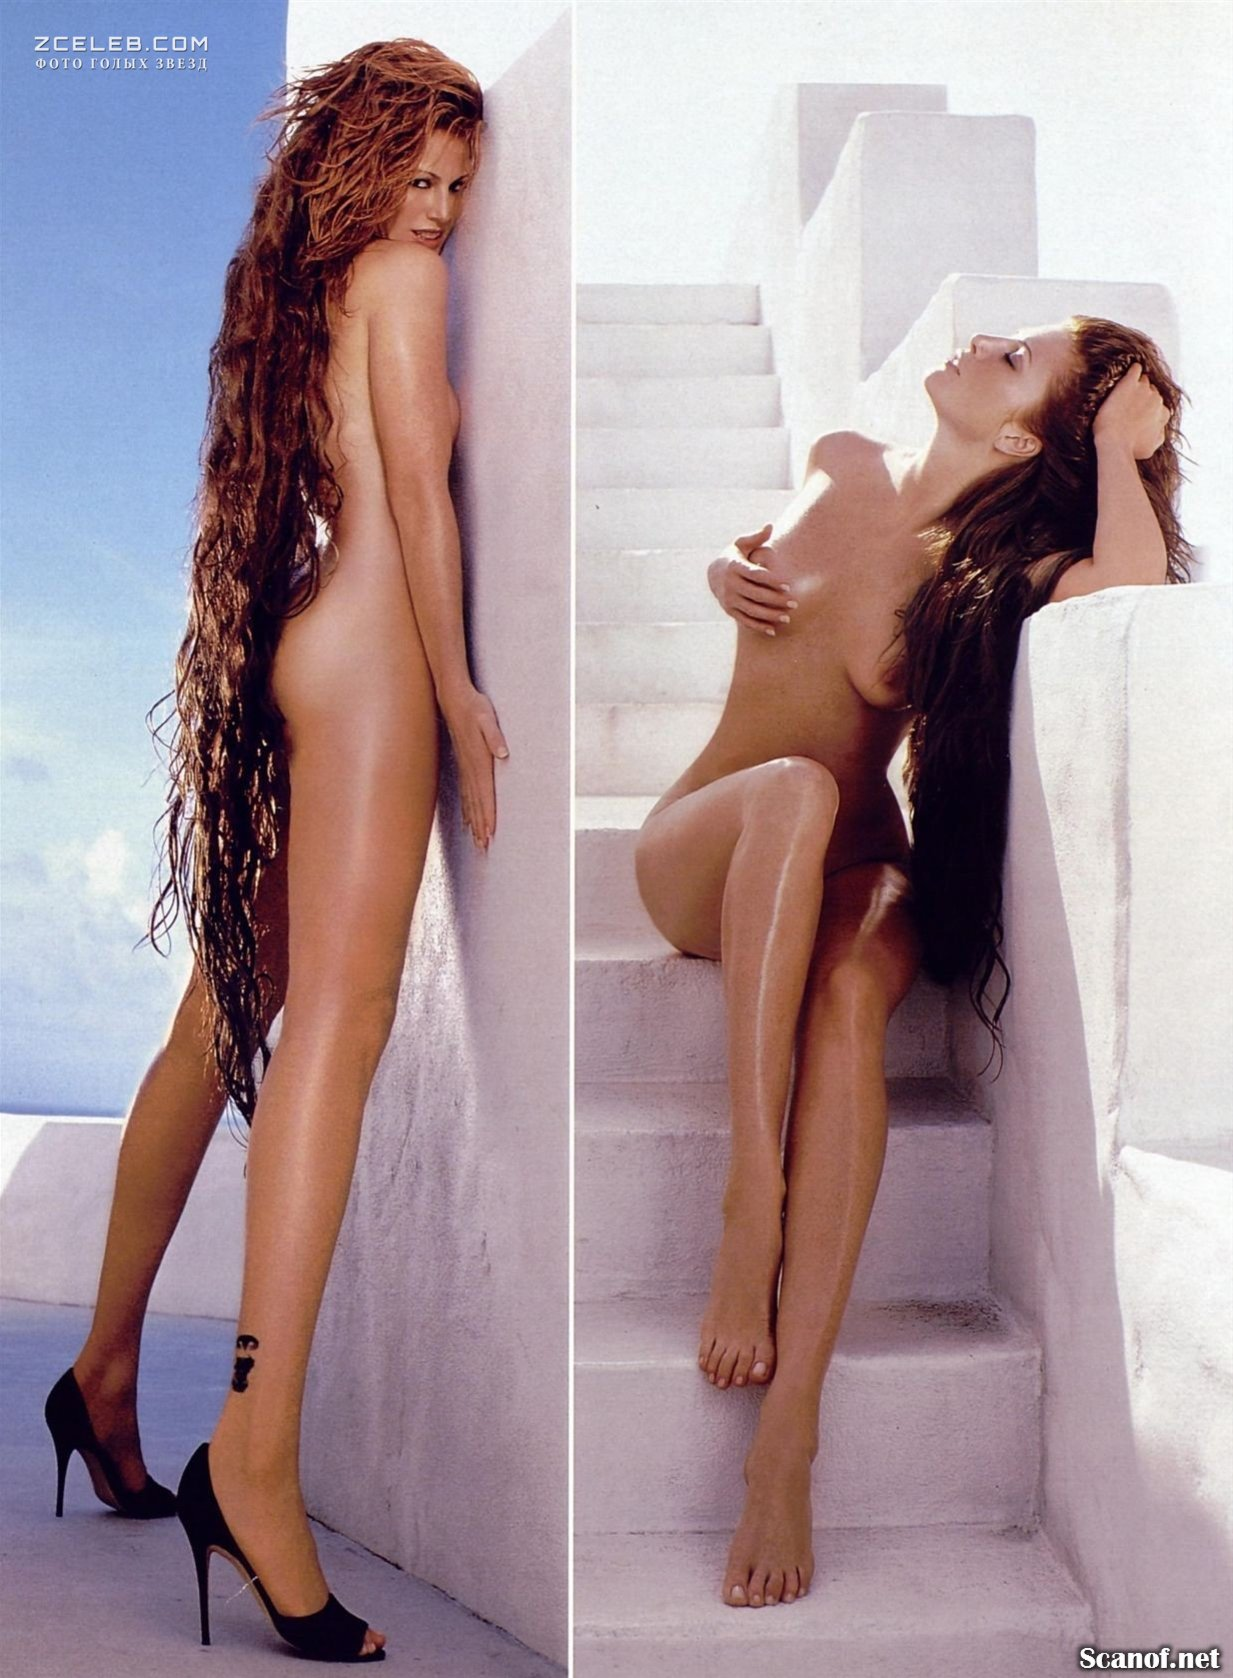 Angie everhart in the nude — img 4